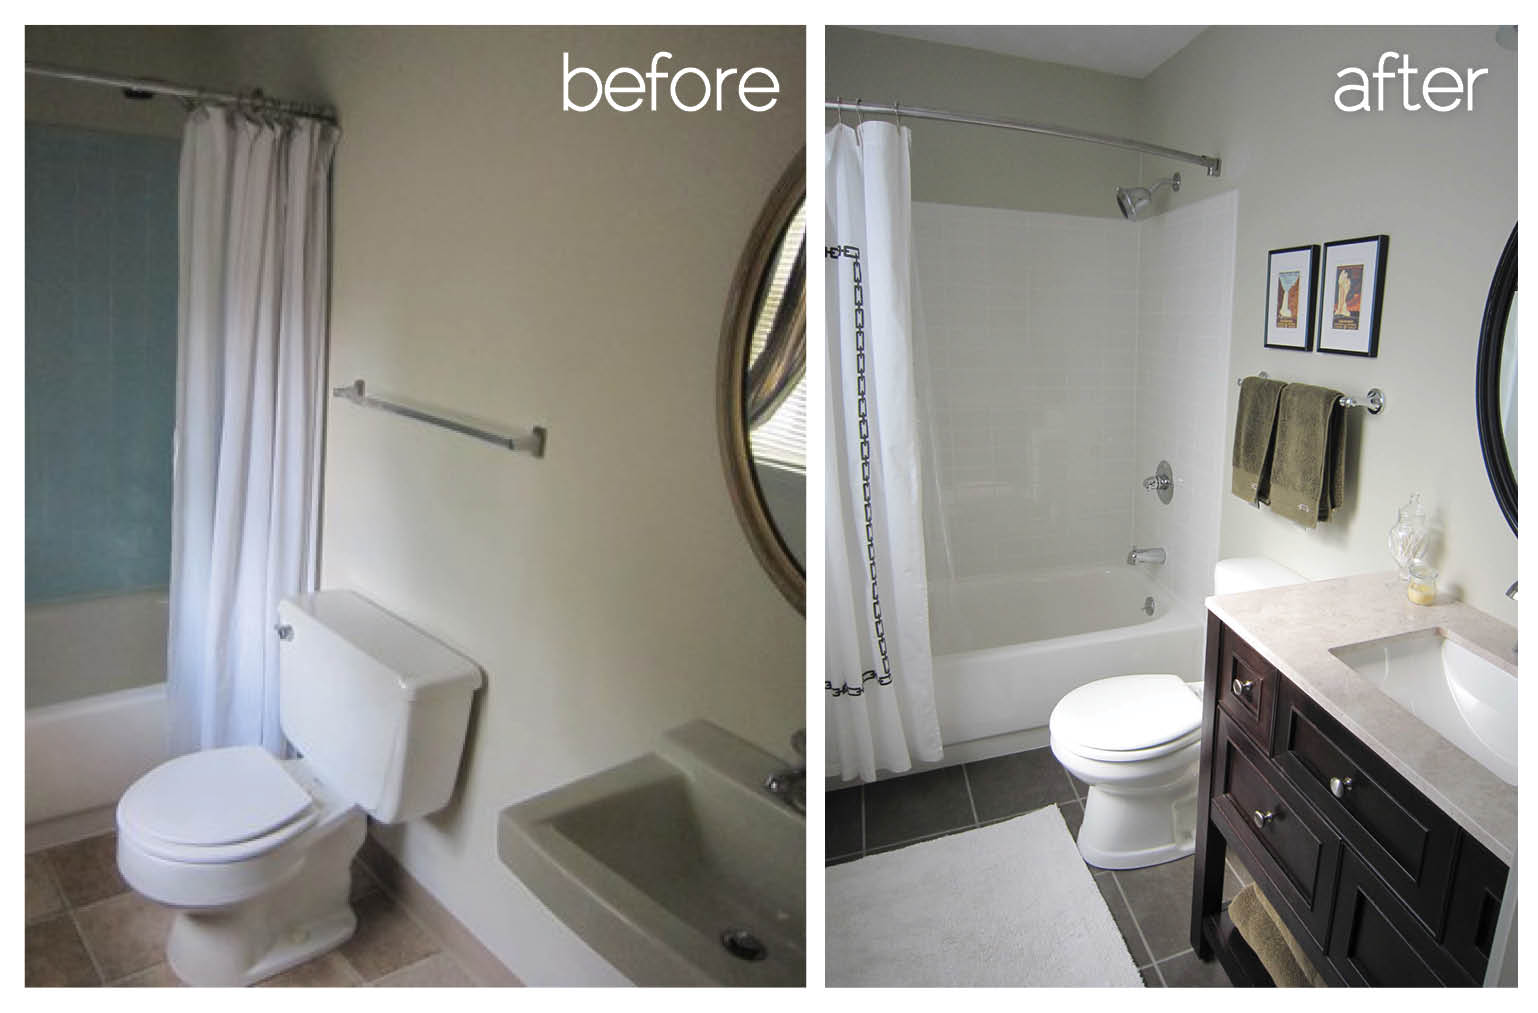 diy-bathroom-remodel-9